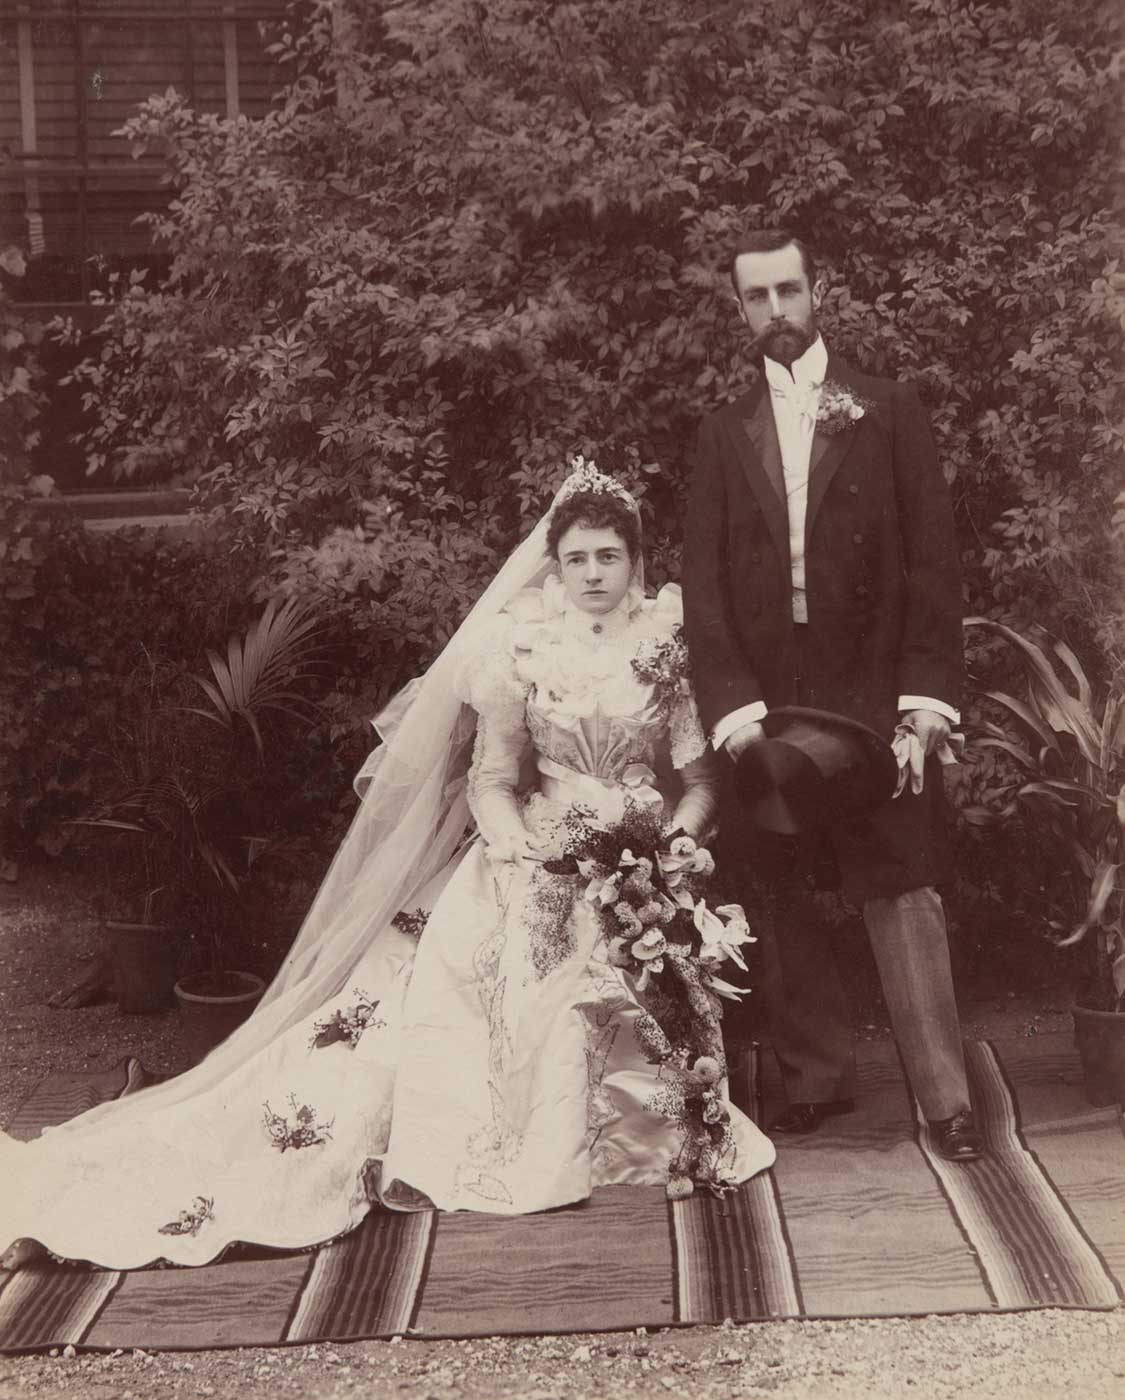 A black and white photo of Lilian Faithfull and William Hugh Anderson at Springfield homestead on their wedding day. - click to view larger image